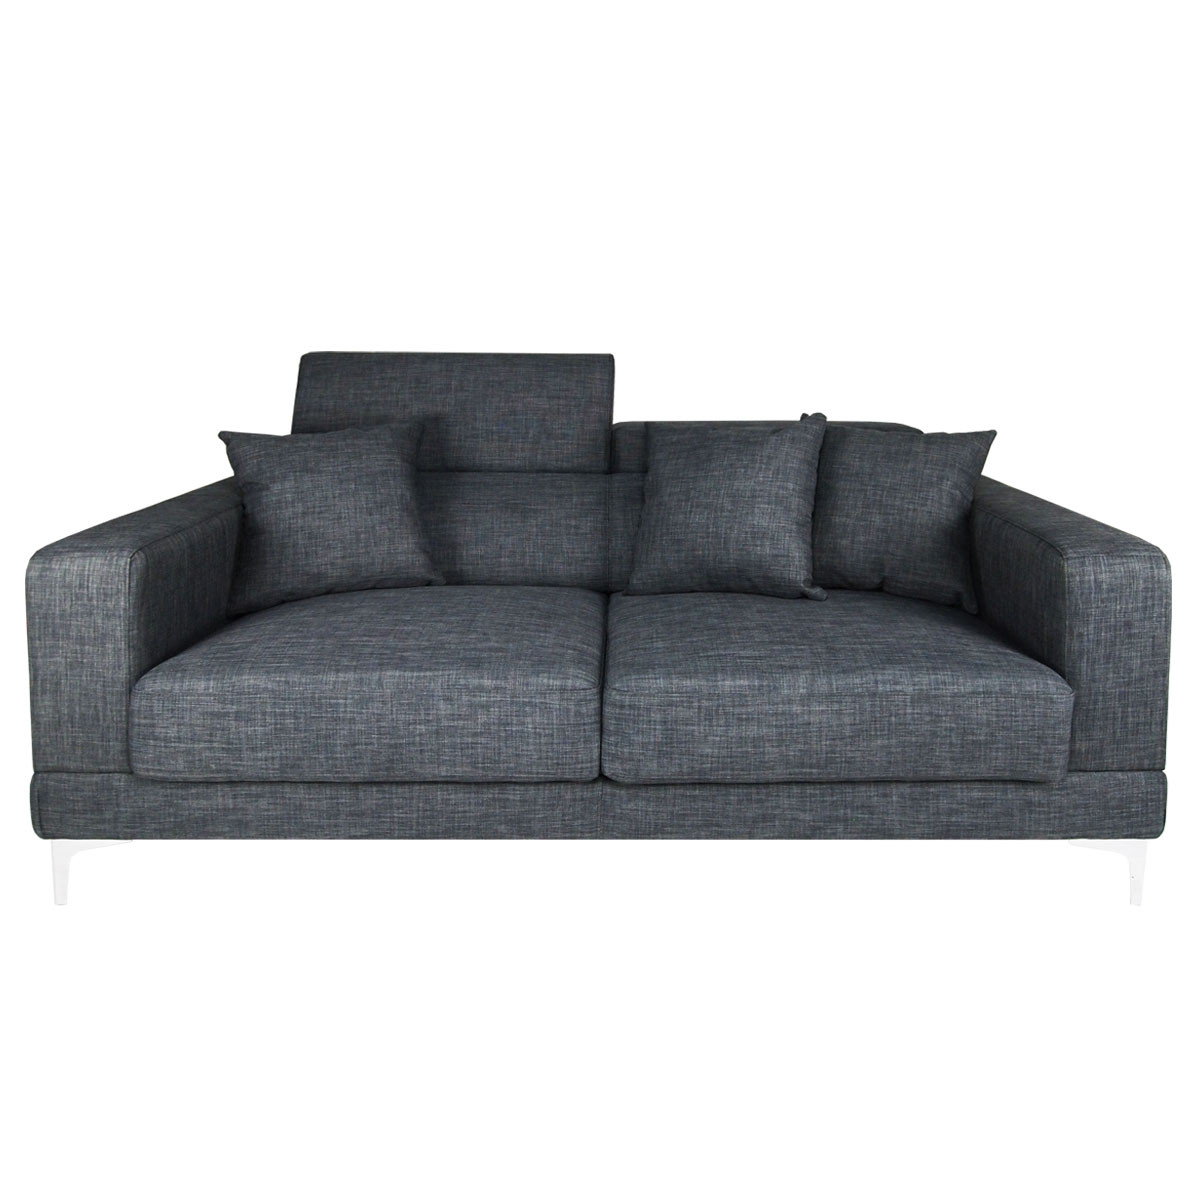 palais 3 seater sofa grey furniture home d cor fortytwo. Black Bedroom Furniture Sets. Home Design Ideas